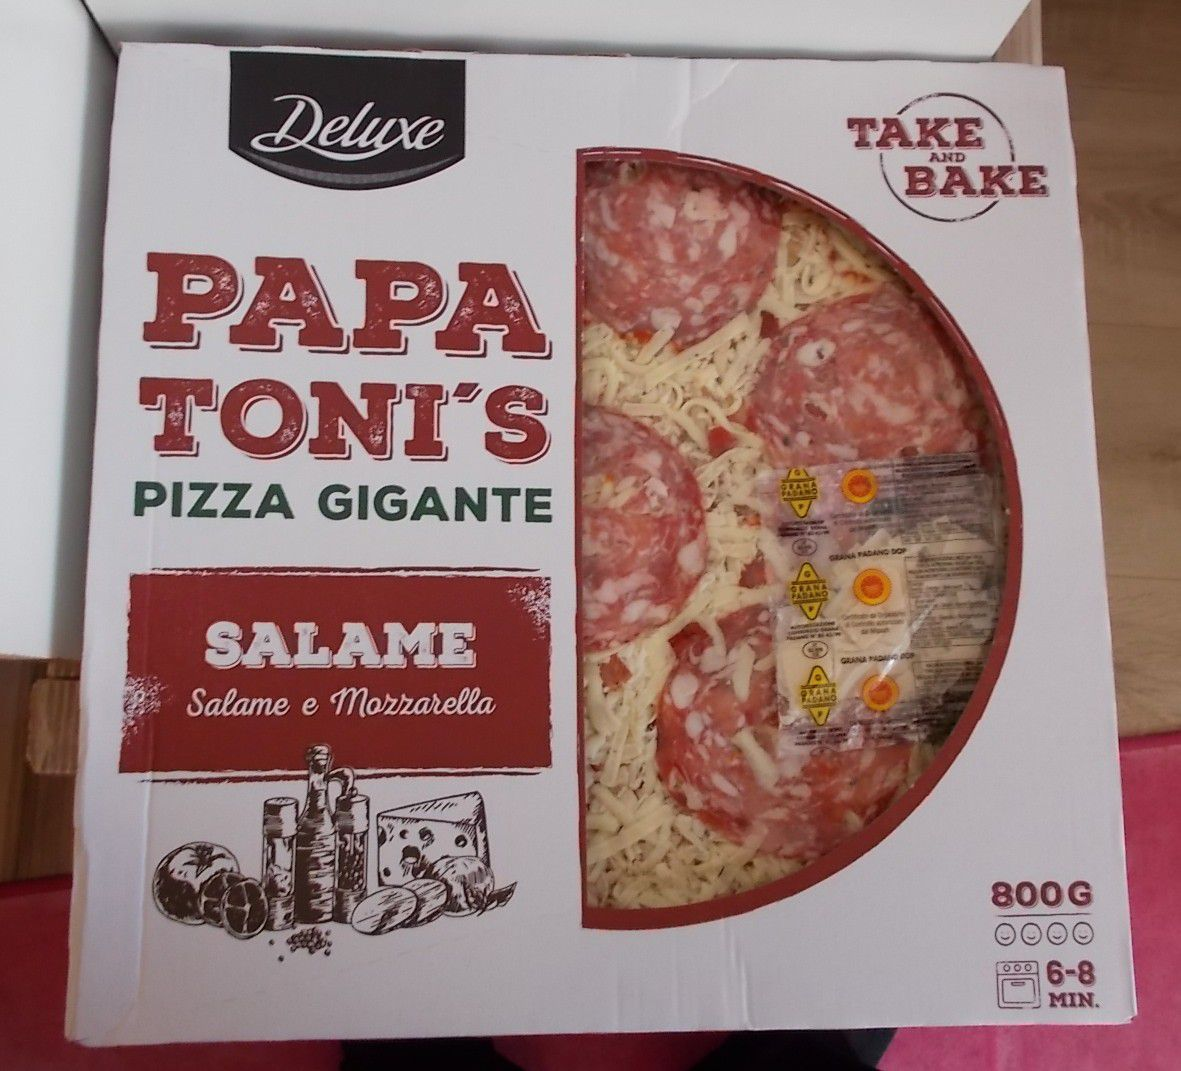 [Lidl] Deluxe Papa Toni's Pizza Gigante Salame